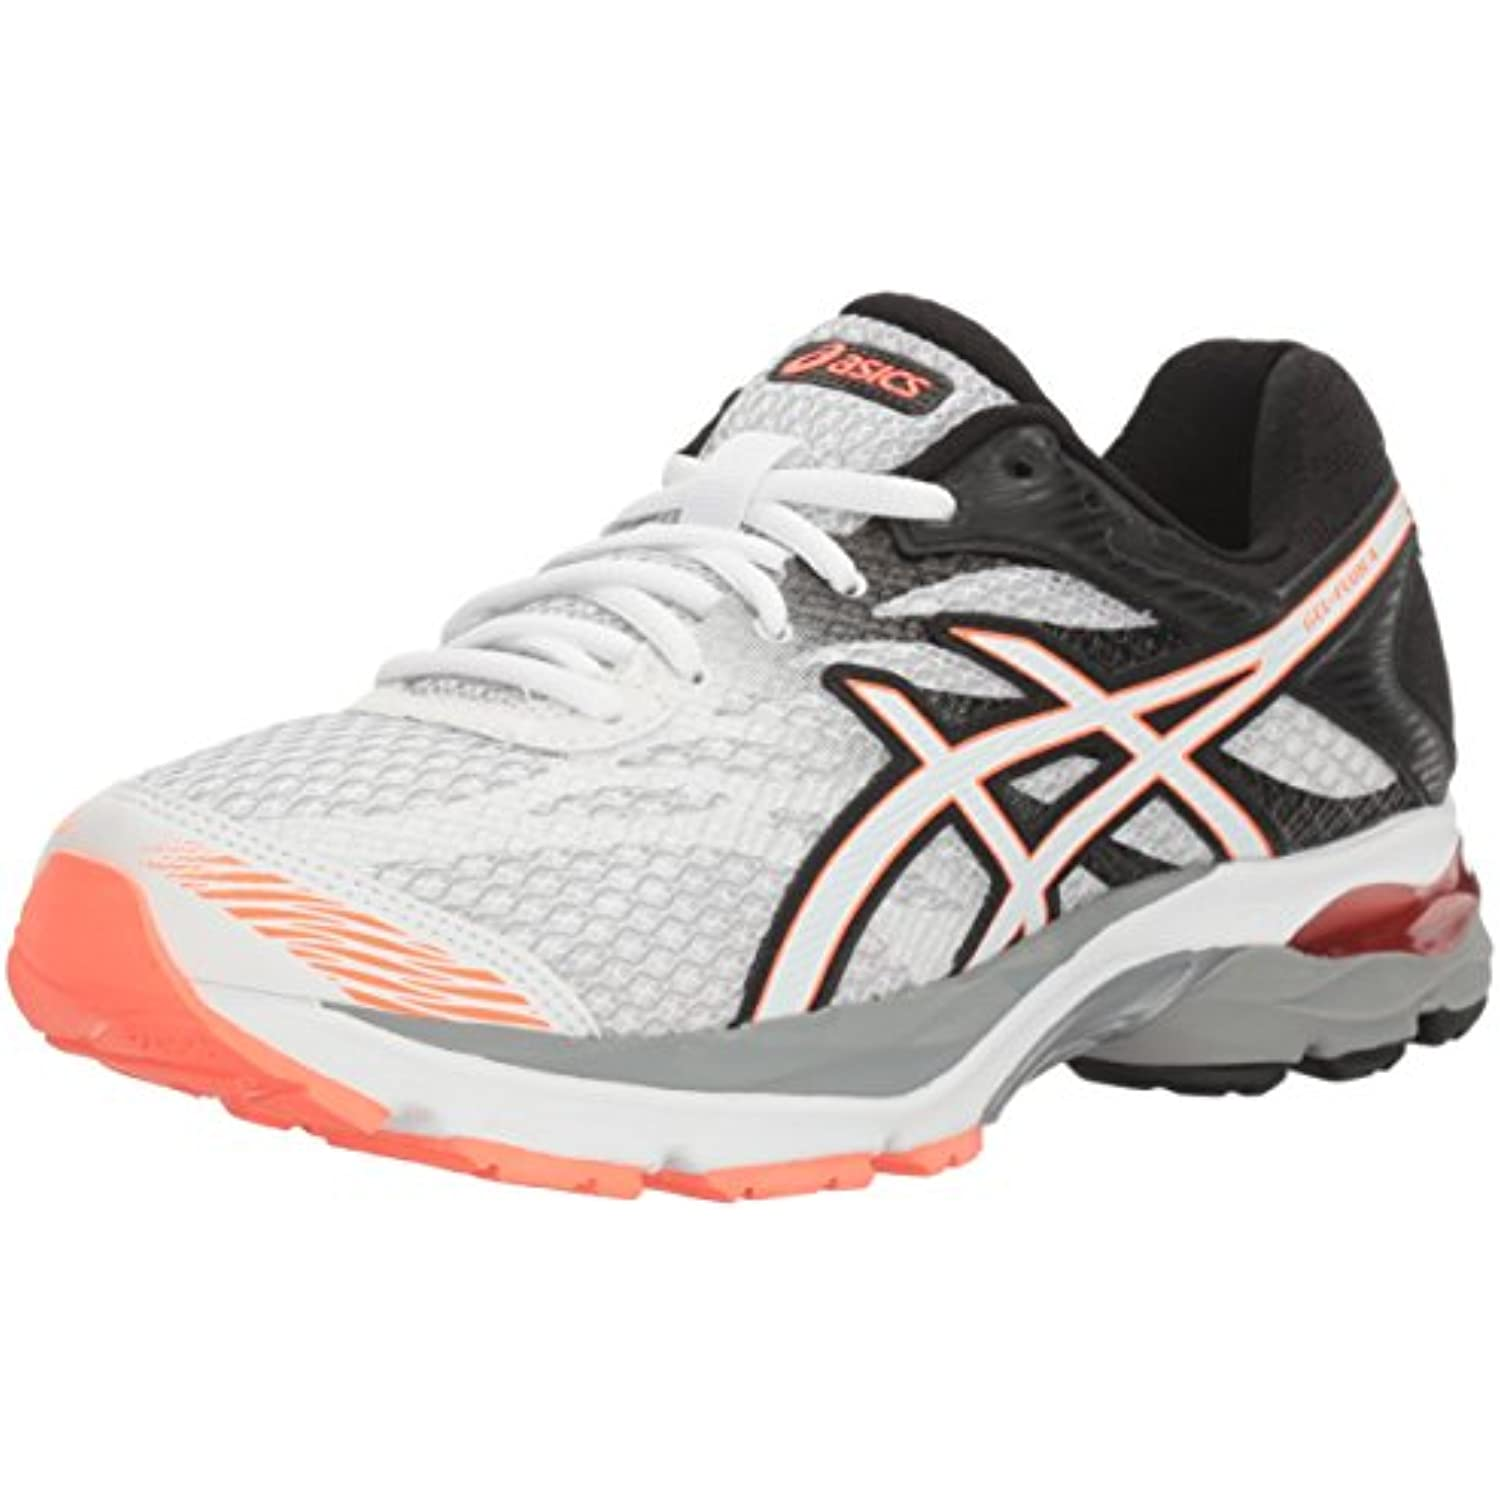 Asics WoHommes 's Gel-Flux 4 Running Shoe, - White/Snow/Flash Coral, 6.5 M US - B01GU9ZY9G - Shoe, 364fdf